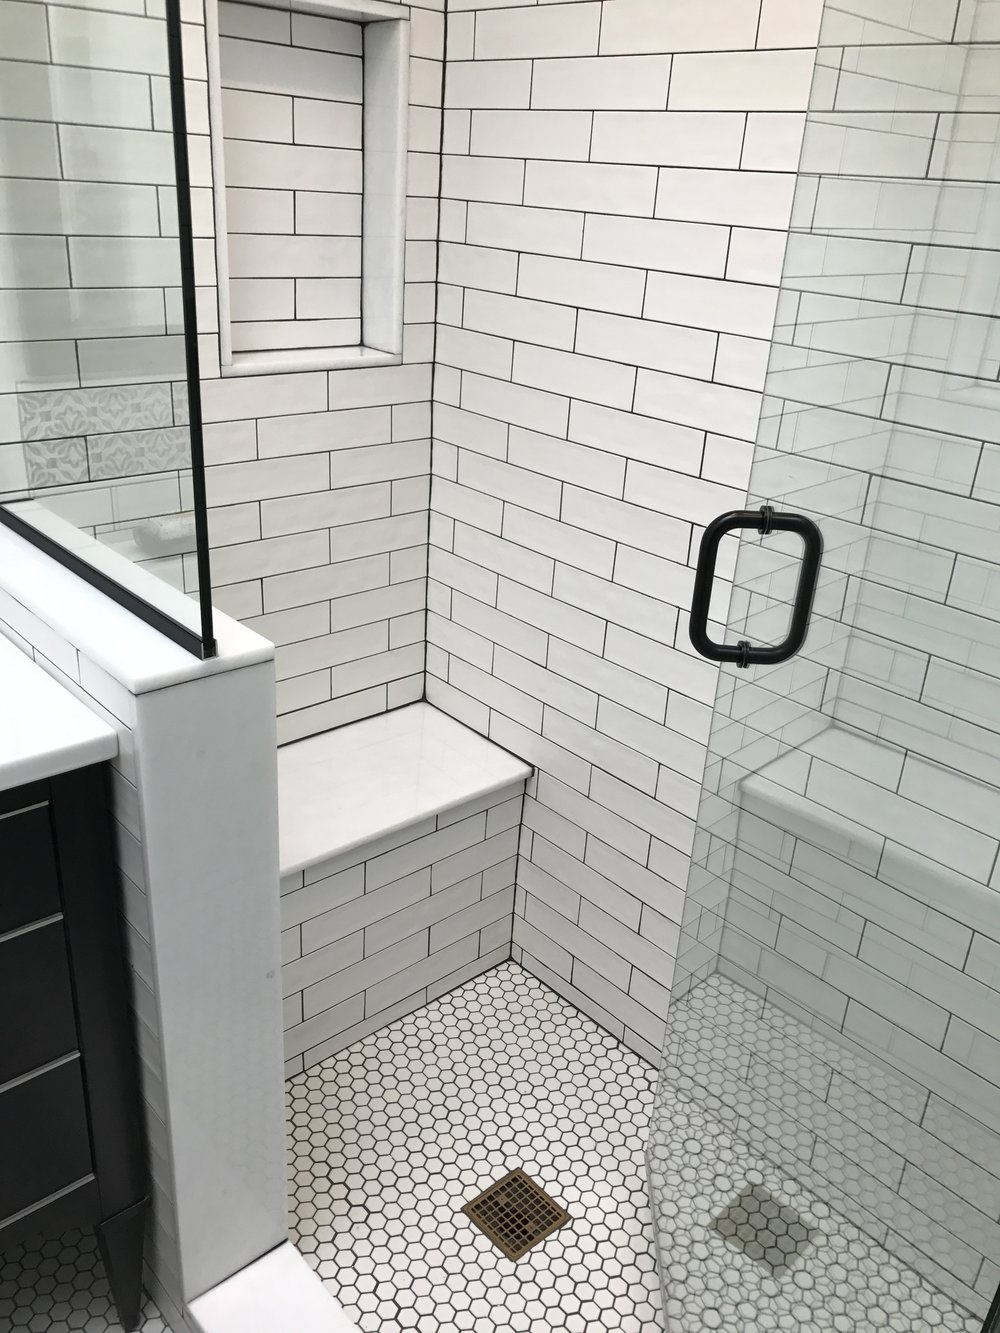 The addition of a small bench and shower niche adds comfort and storage for a more functional shower.